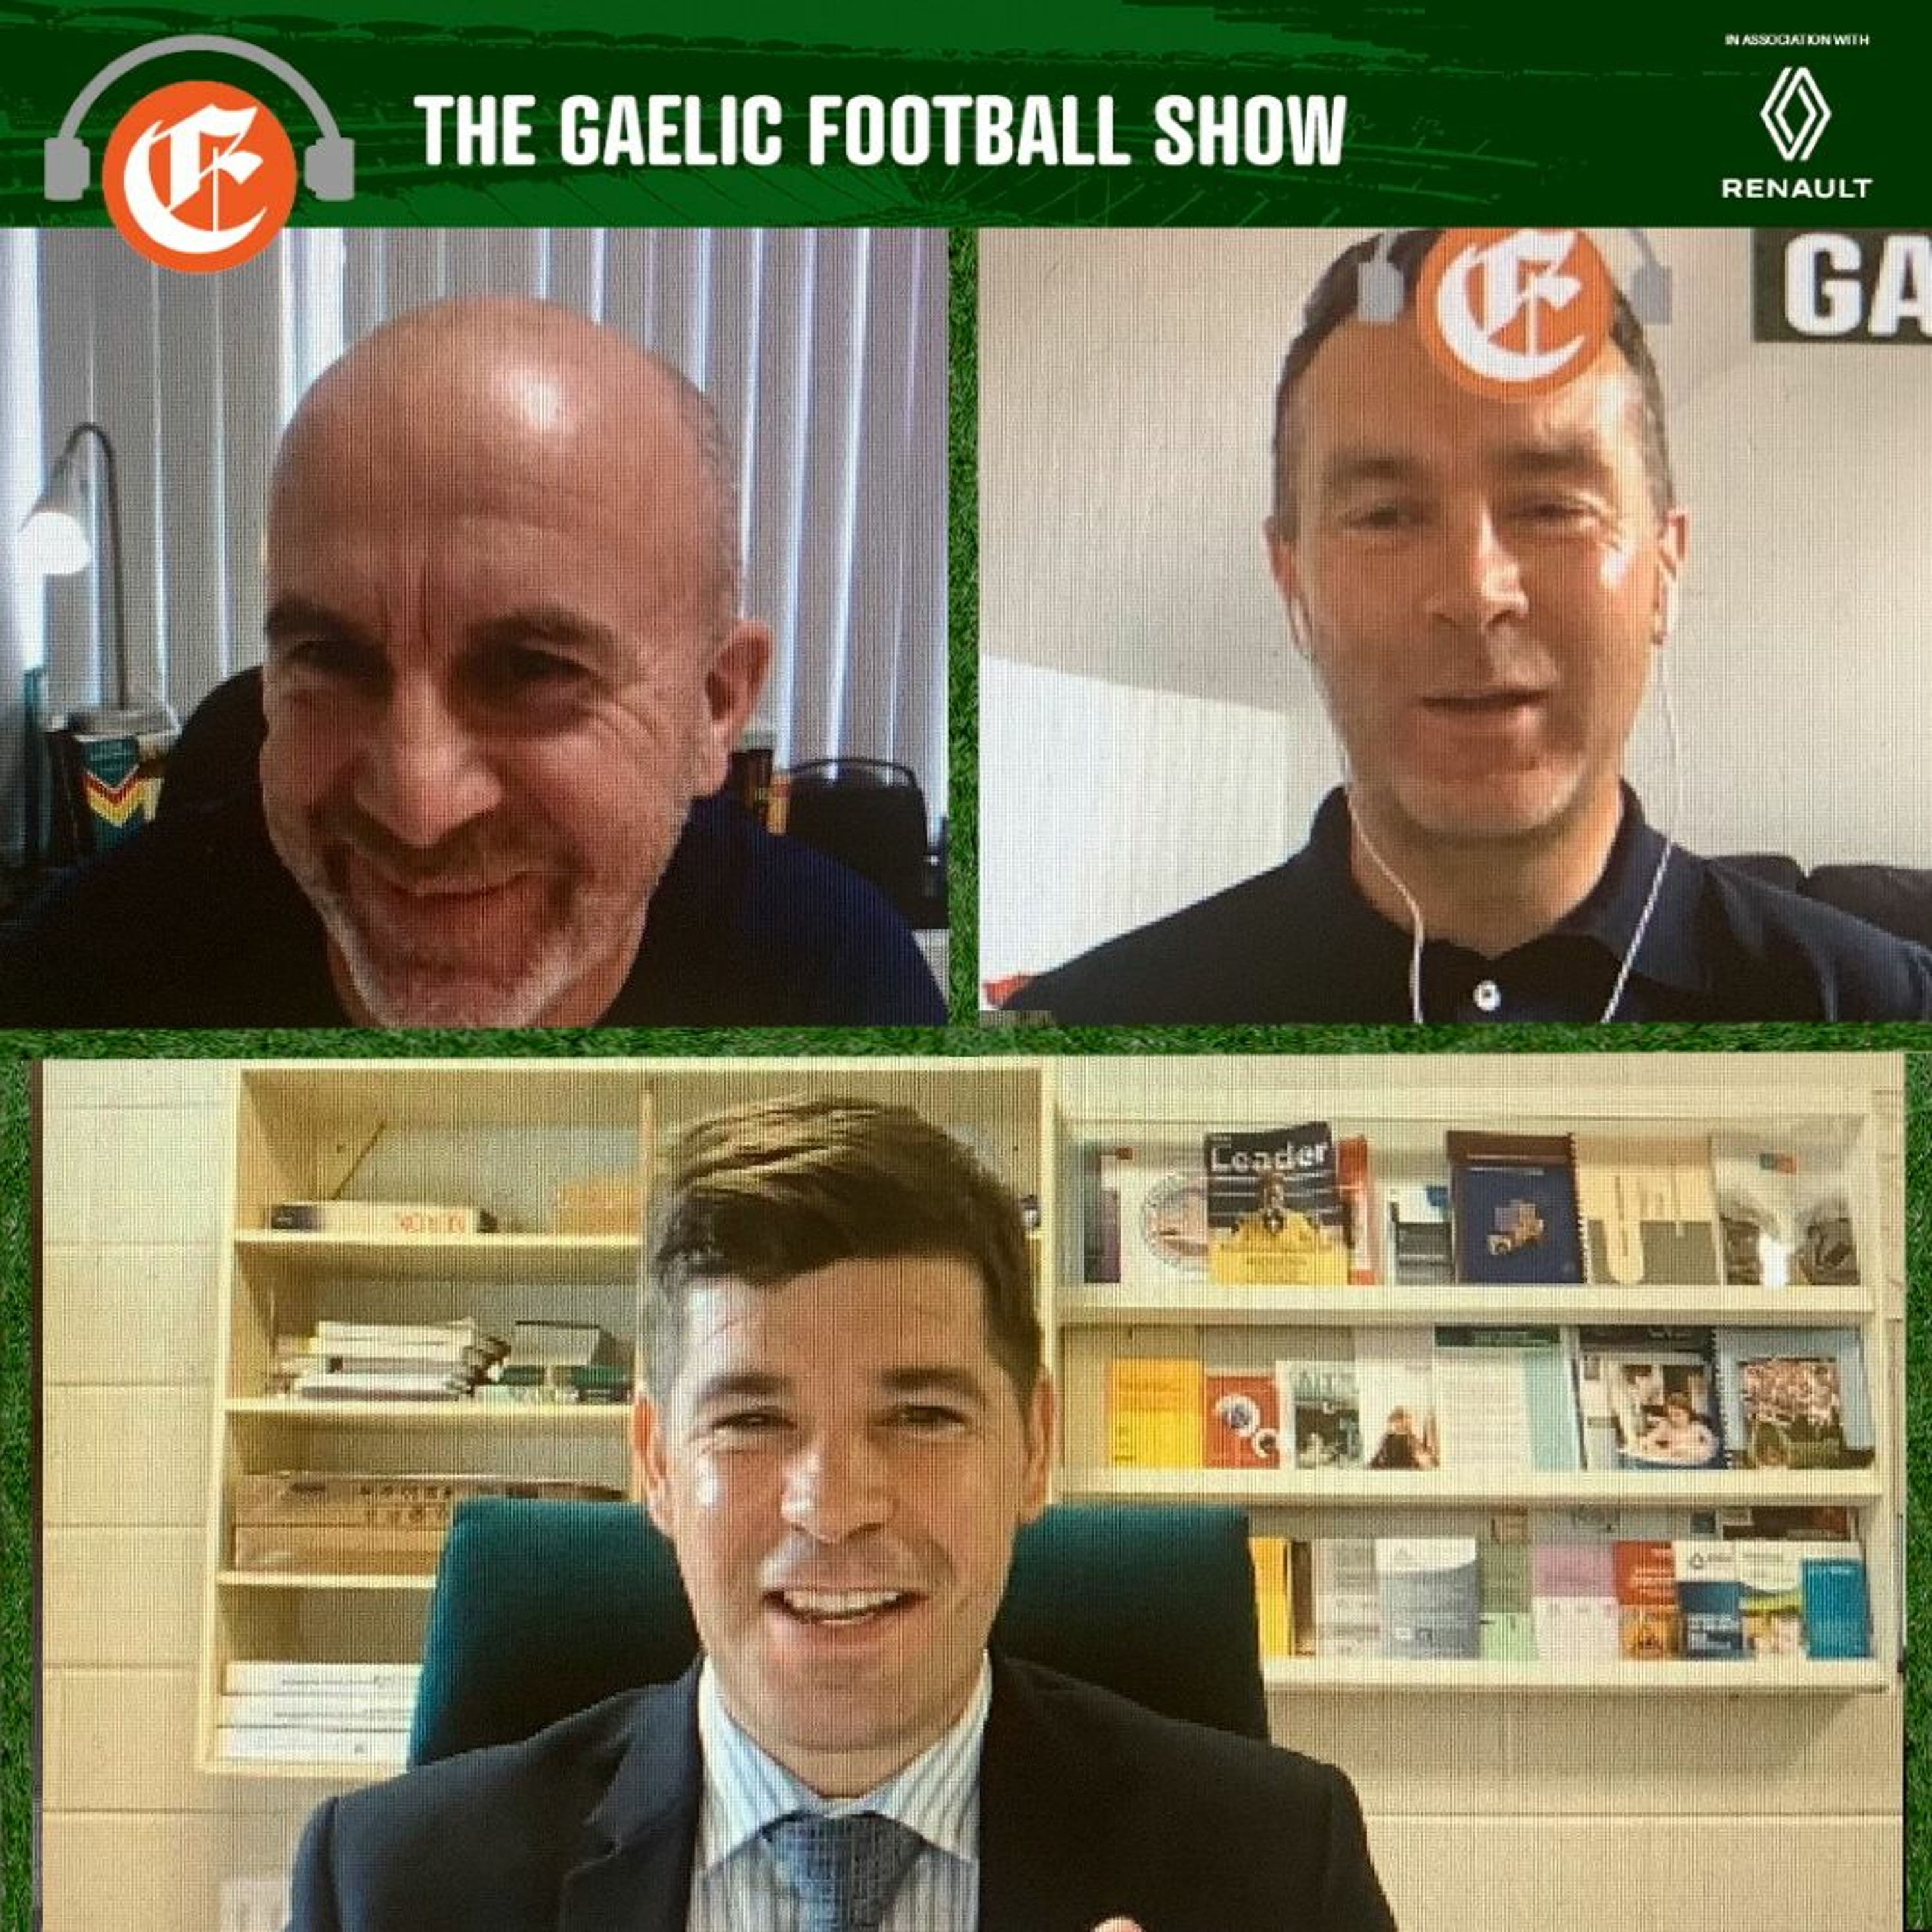 Gaelic Football Show: Tyrone grow in front of our eyes, but forget shallow talk of Mayo bottle